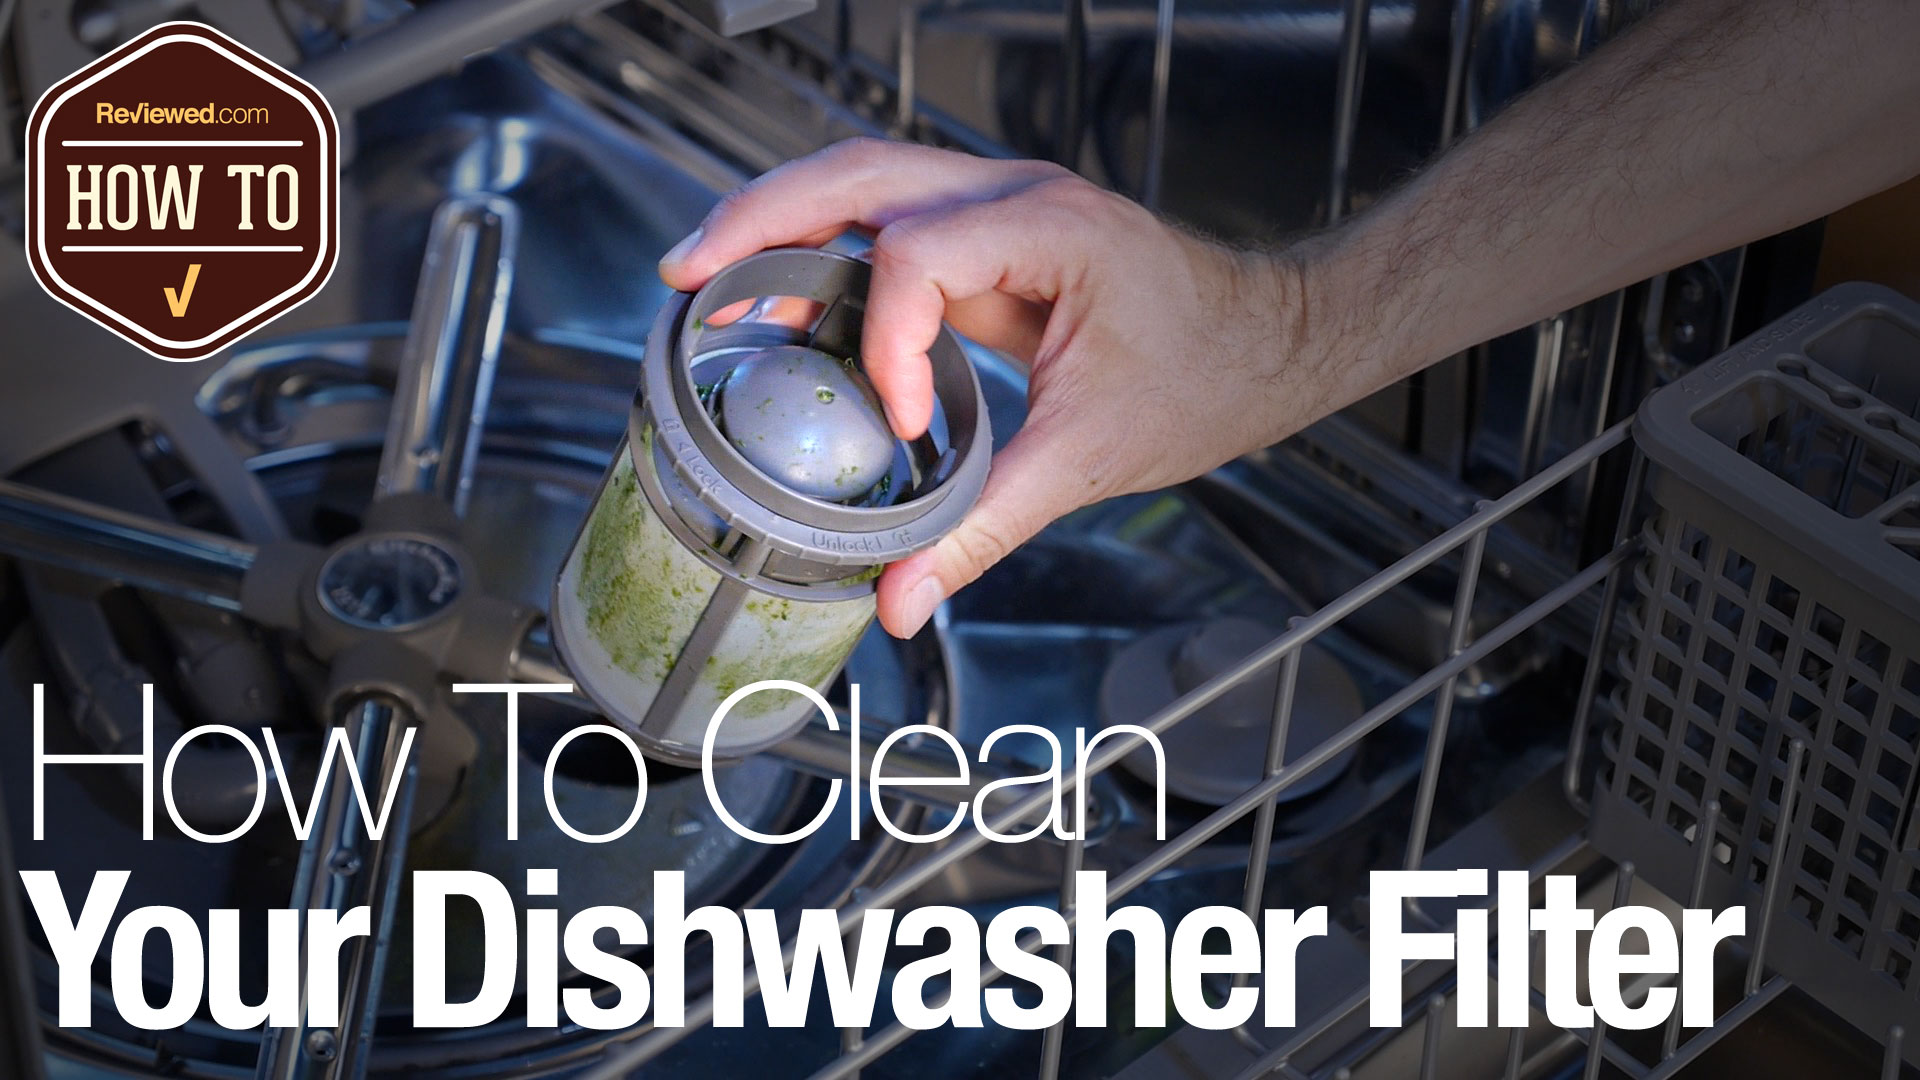 hight resolution of everything you need to know about dishwasher cycles reviewed com dishwashers